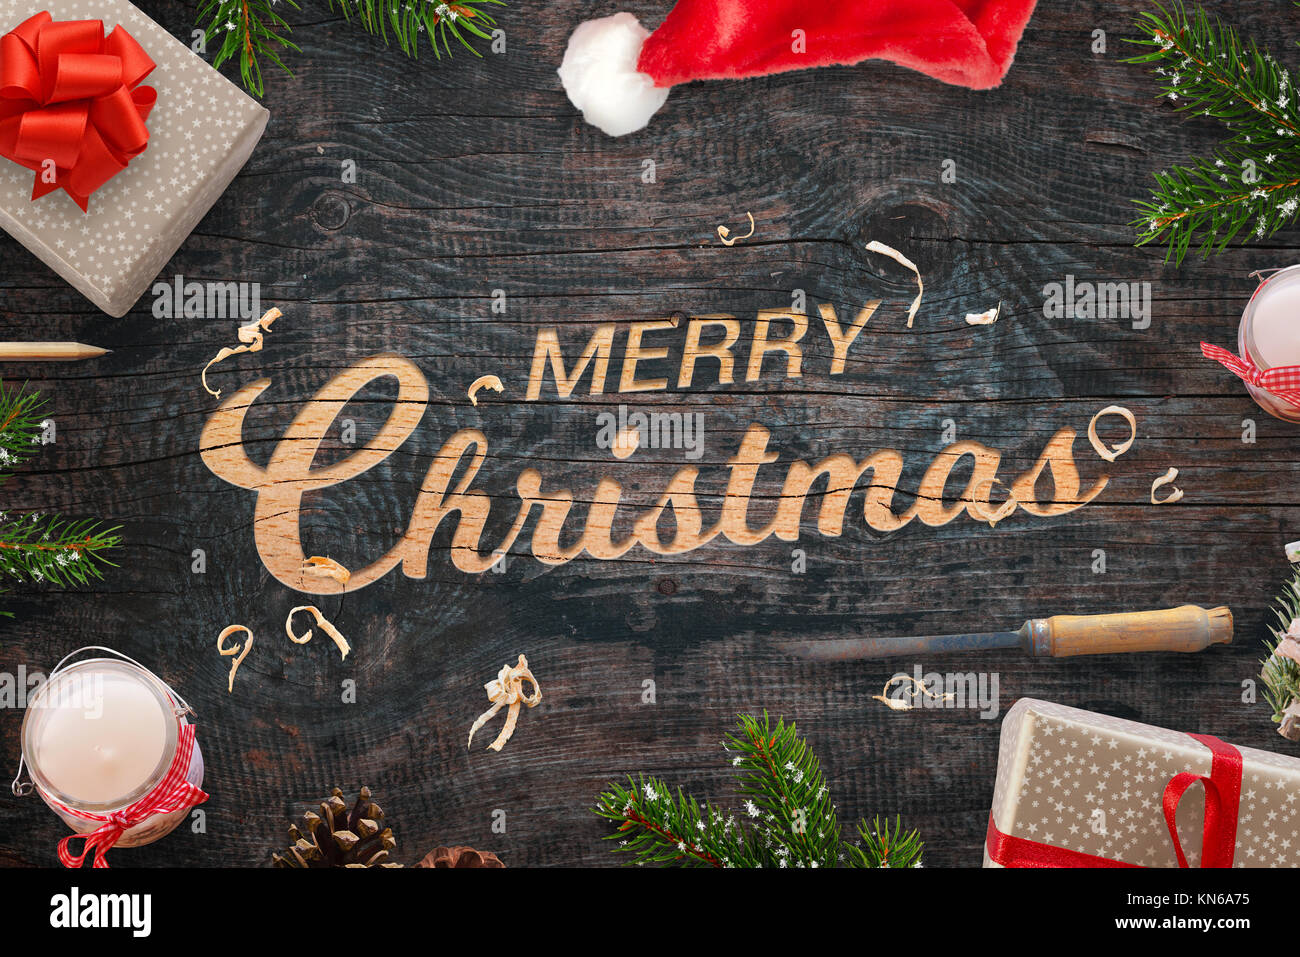 Merry Christmas greeting carved into a wooden surface. Christmas gifts, tree branches, chisel, candles, pinecones - Stock Image